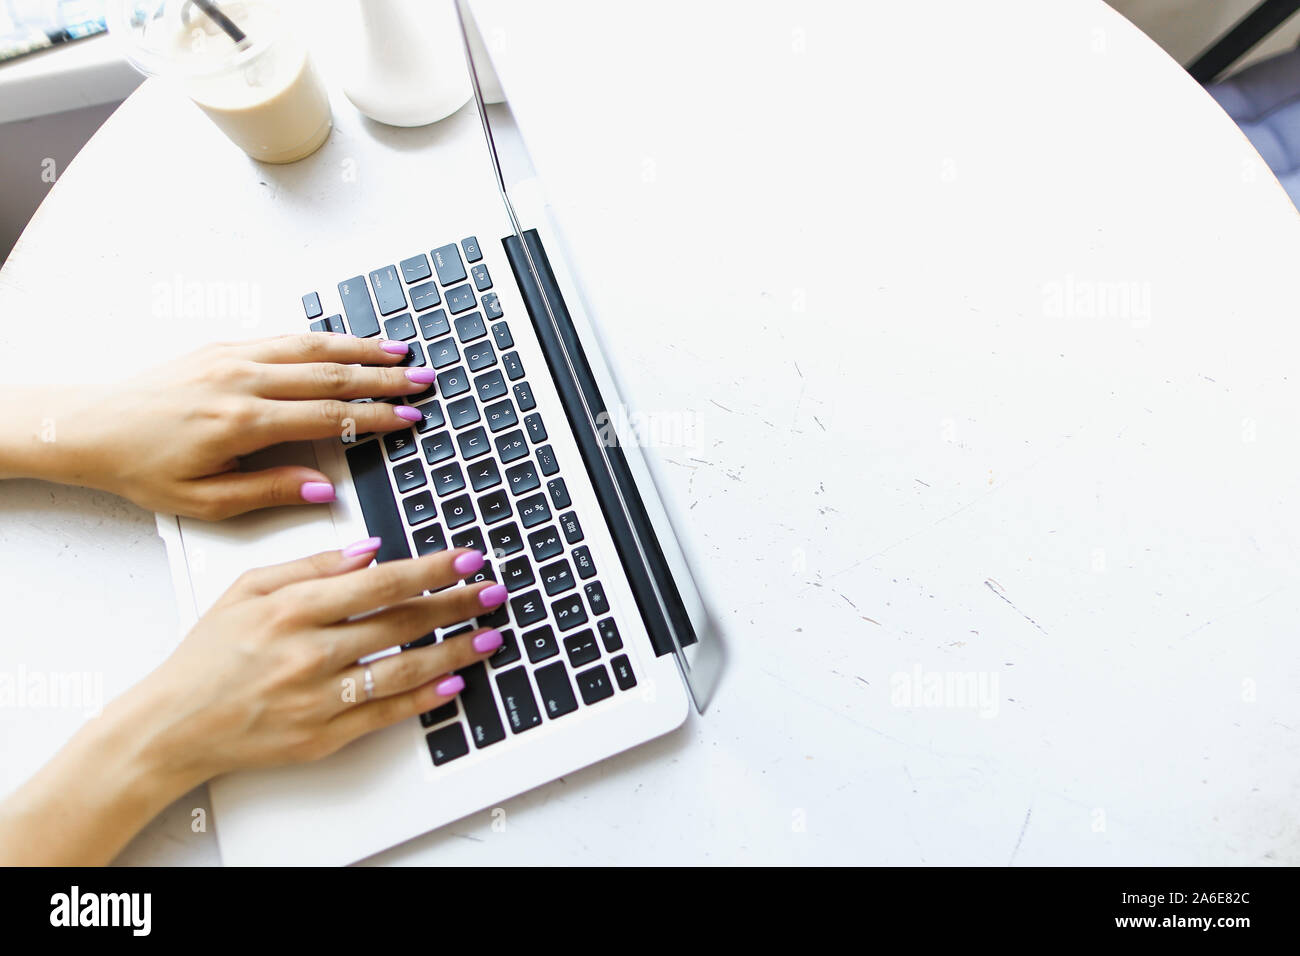 Hands Typing On Laptop Keyboard Banner With White Copyspace Stock Photo Alamy